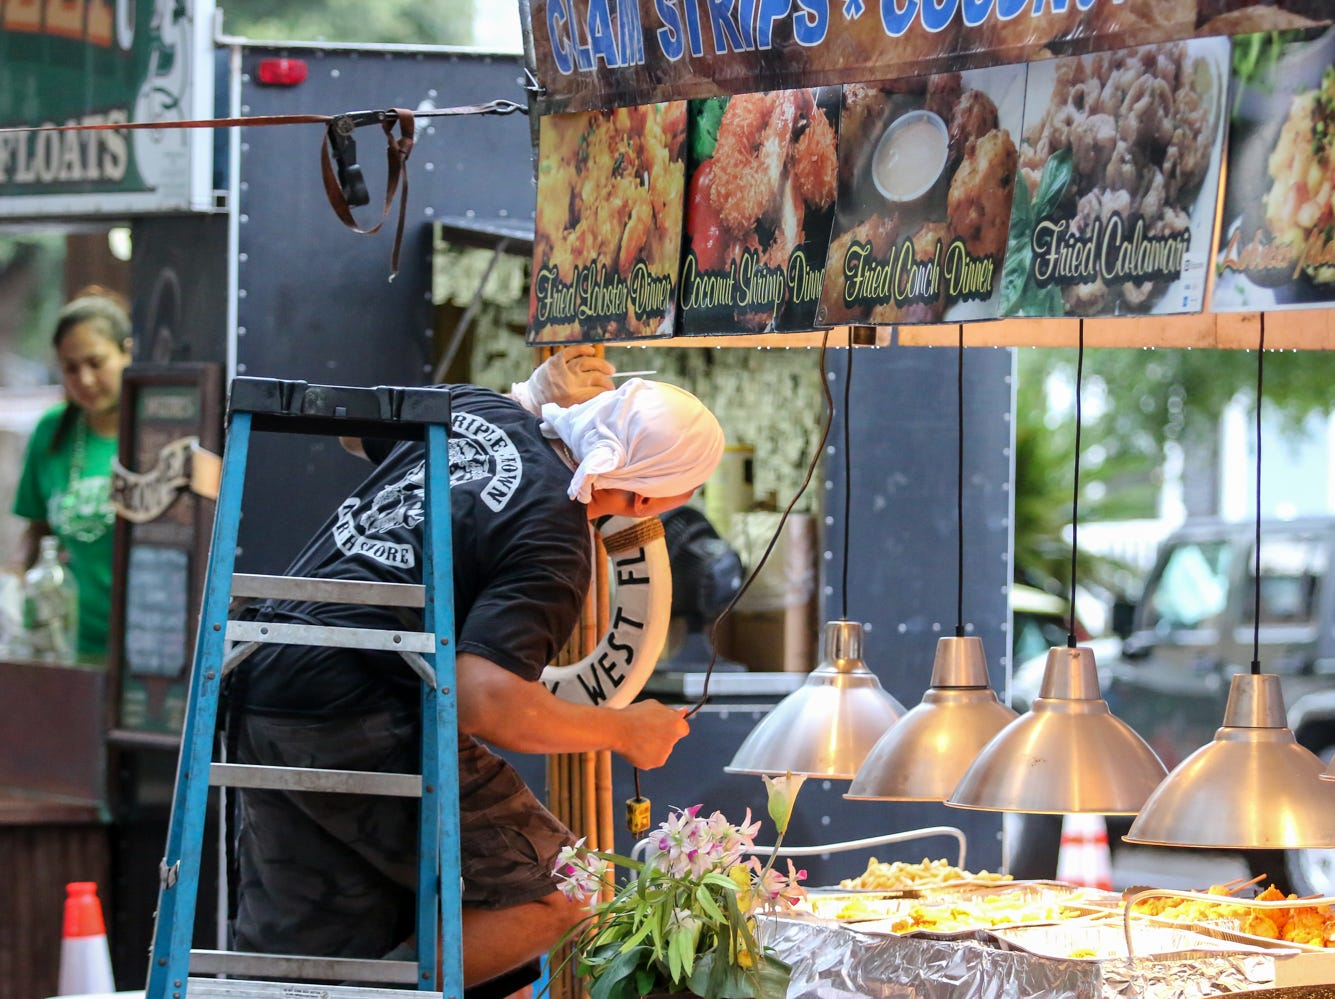 A worker puts the finishing touches on a food stand on the first day of the 41st annual Pensacola Seafood Festival in downtown Pensacola on Friday, September 28, 2018. The festival, which features multiple food vendors, artists, cooking demonstrations, live music and more, is free to enter and continues through Sunday.